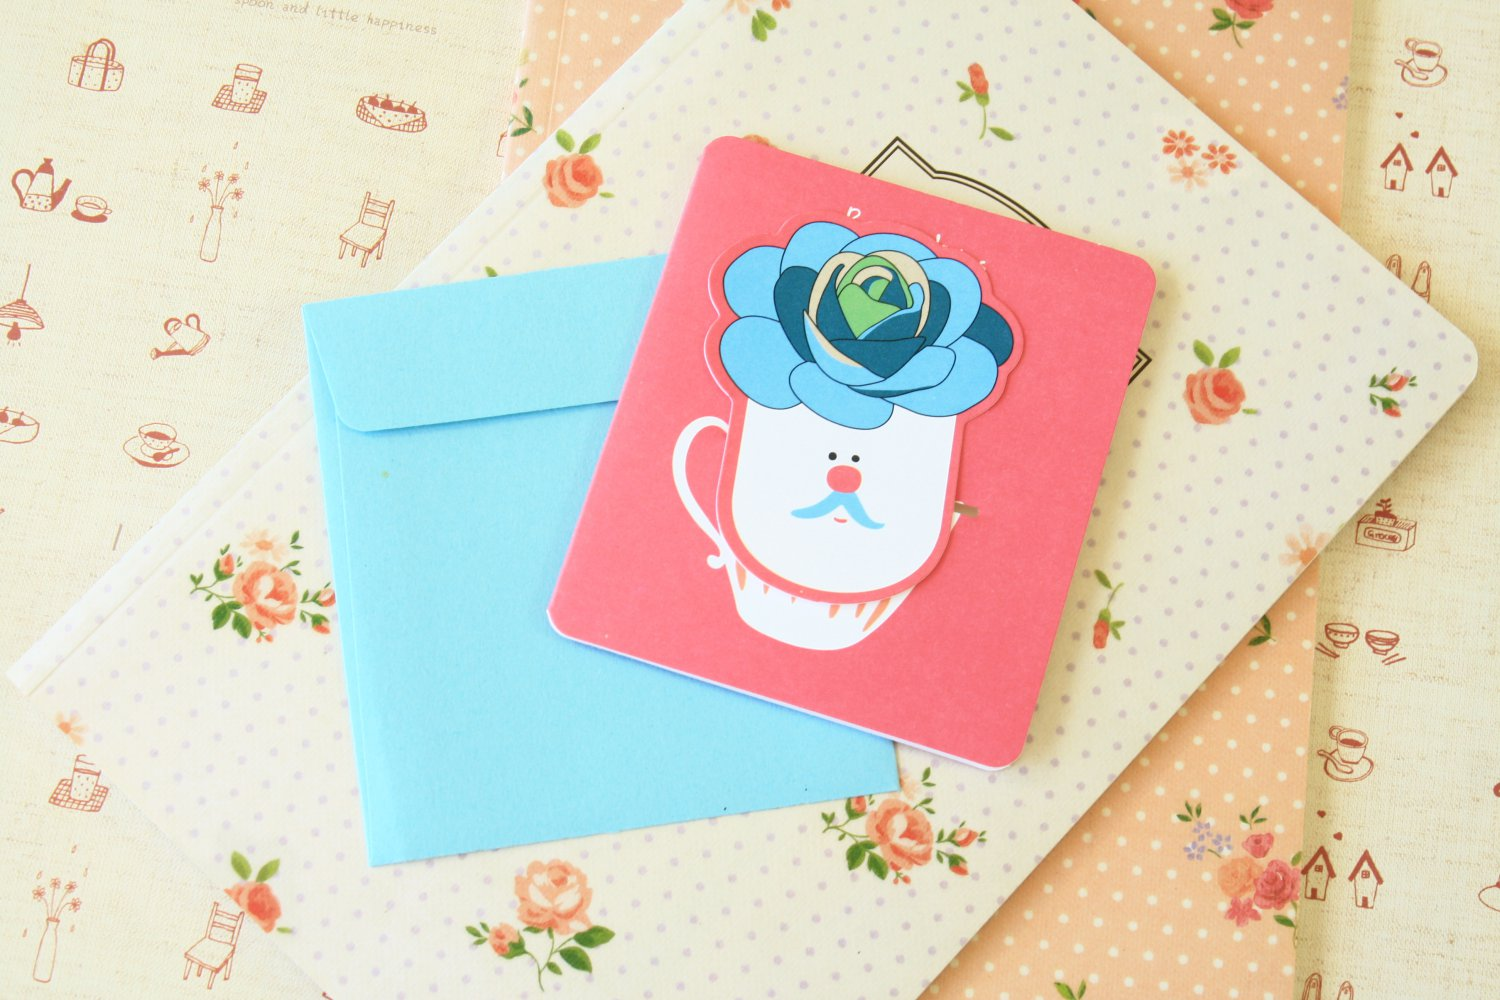 09 Succulents Bookmark & cartoon greeting card